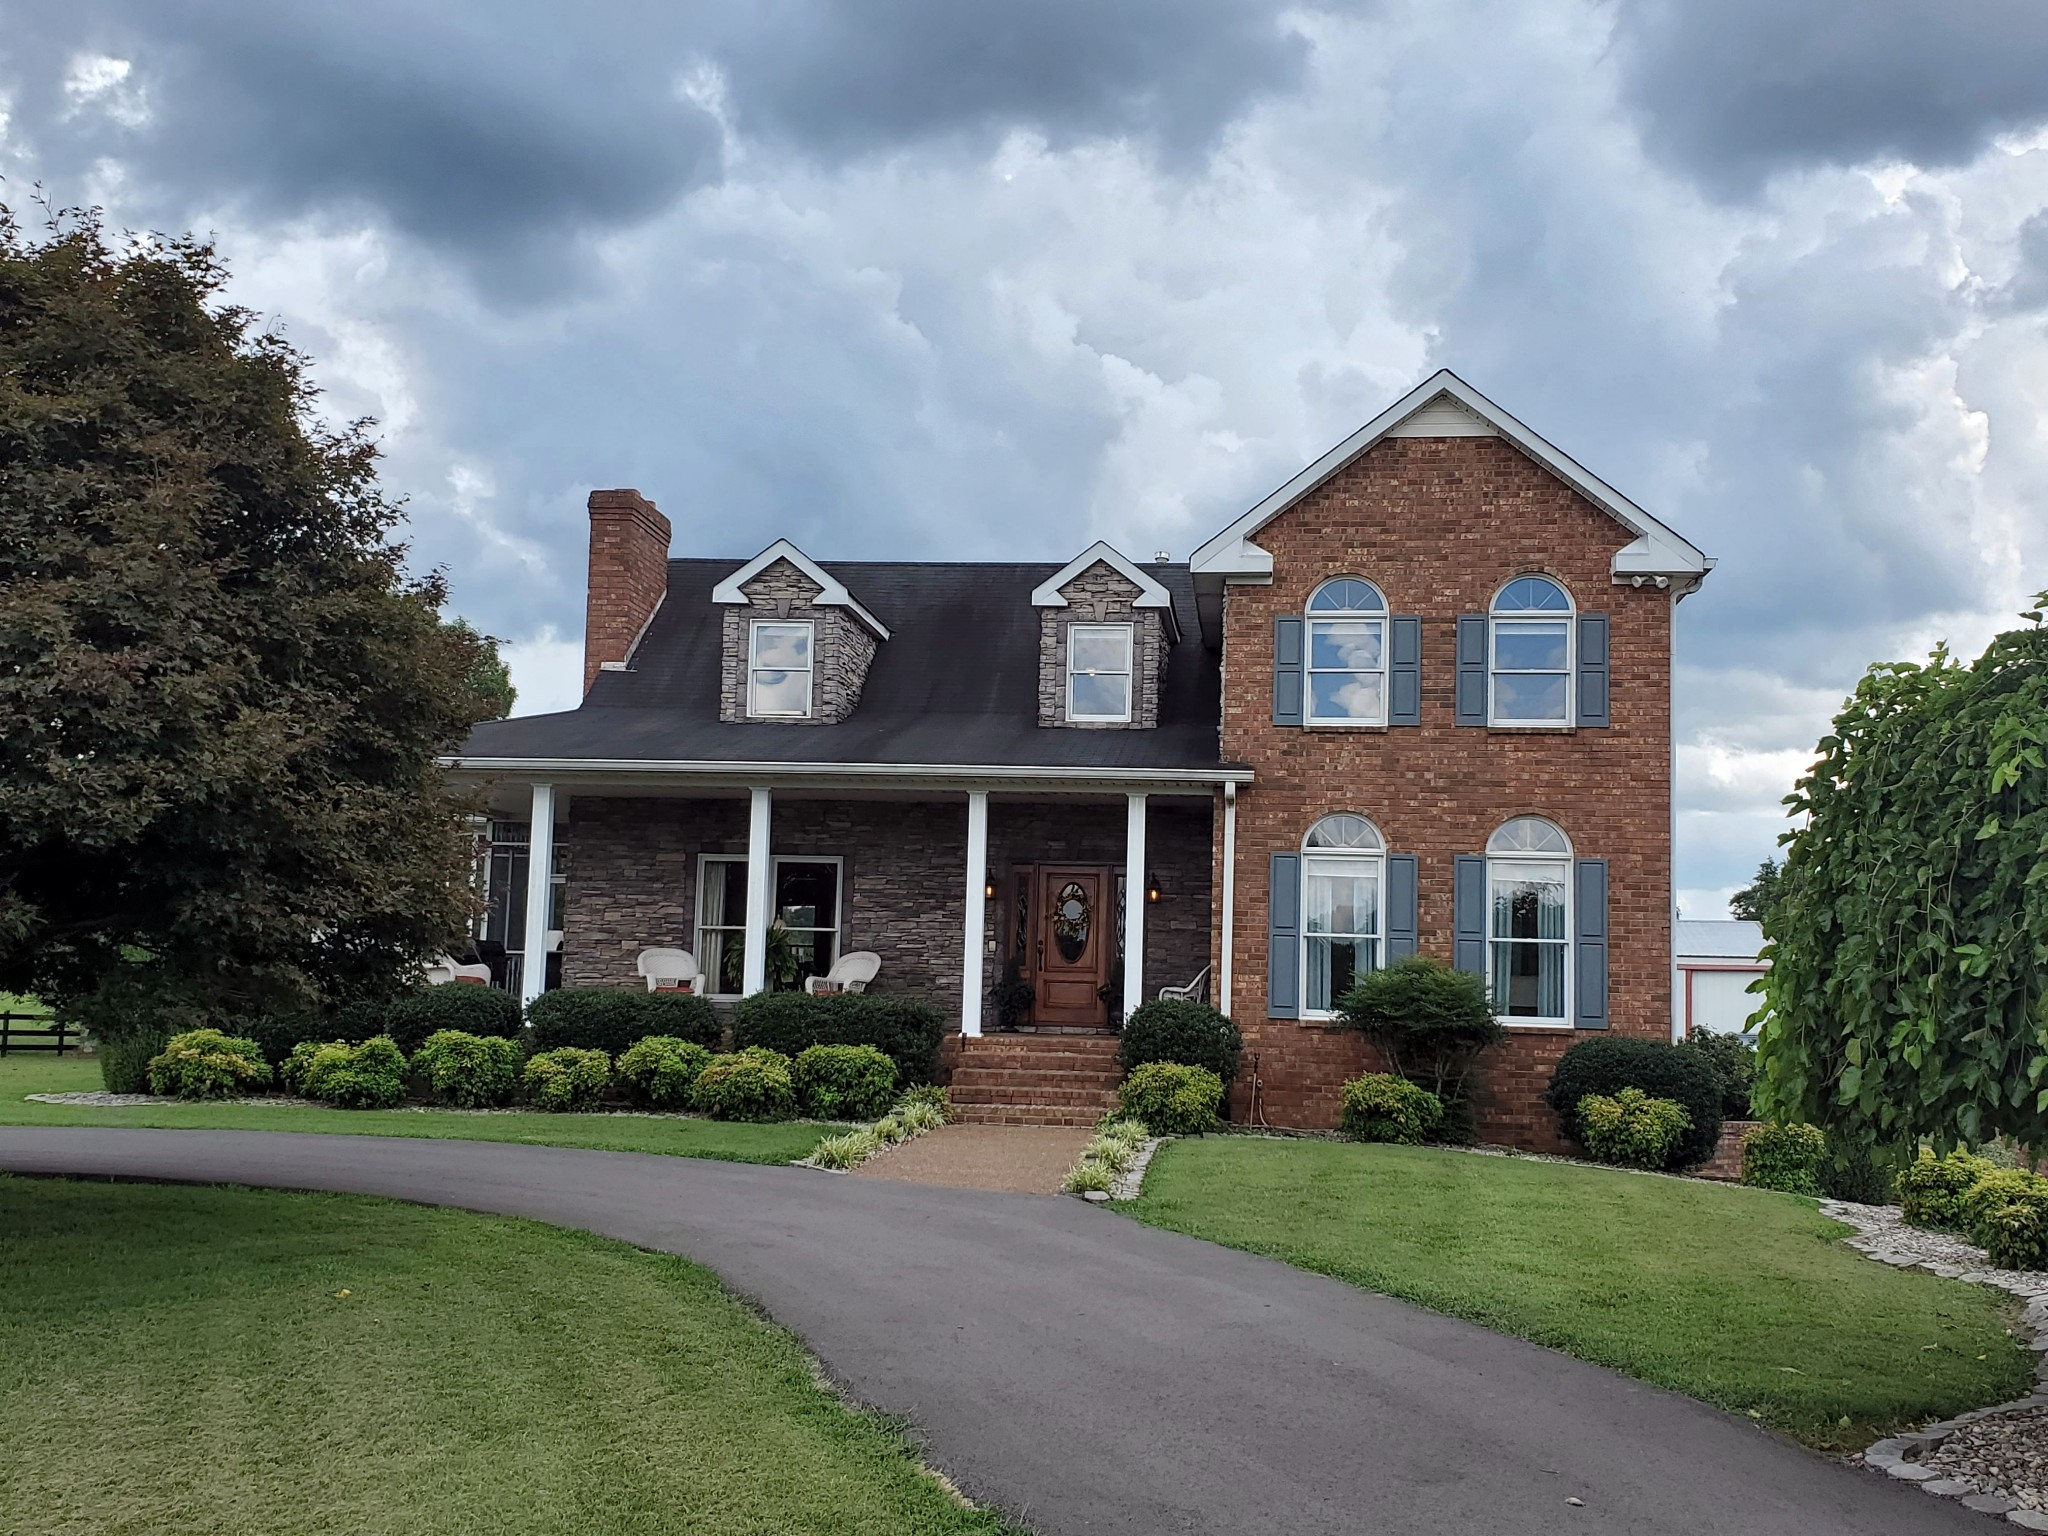 180 Marlin Rd Property Photo - White House, TN real estate listing